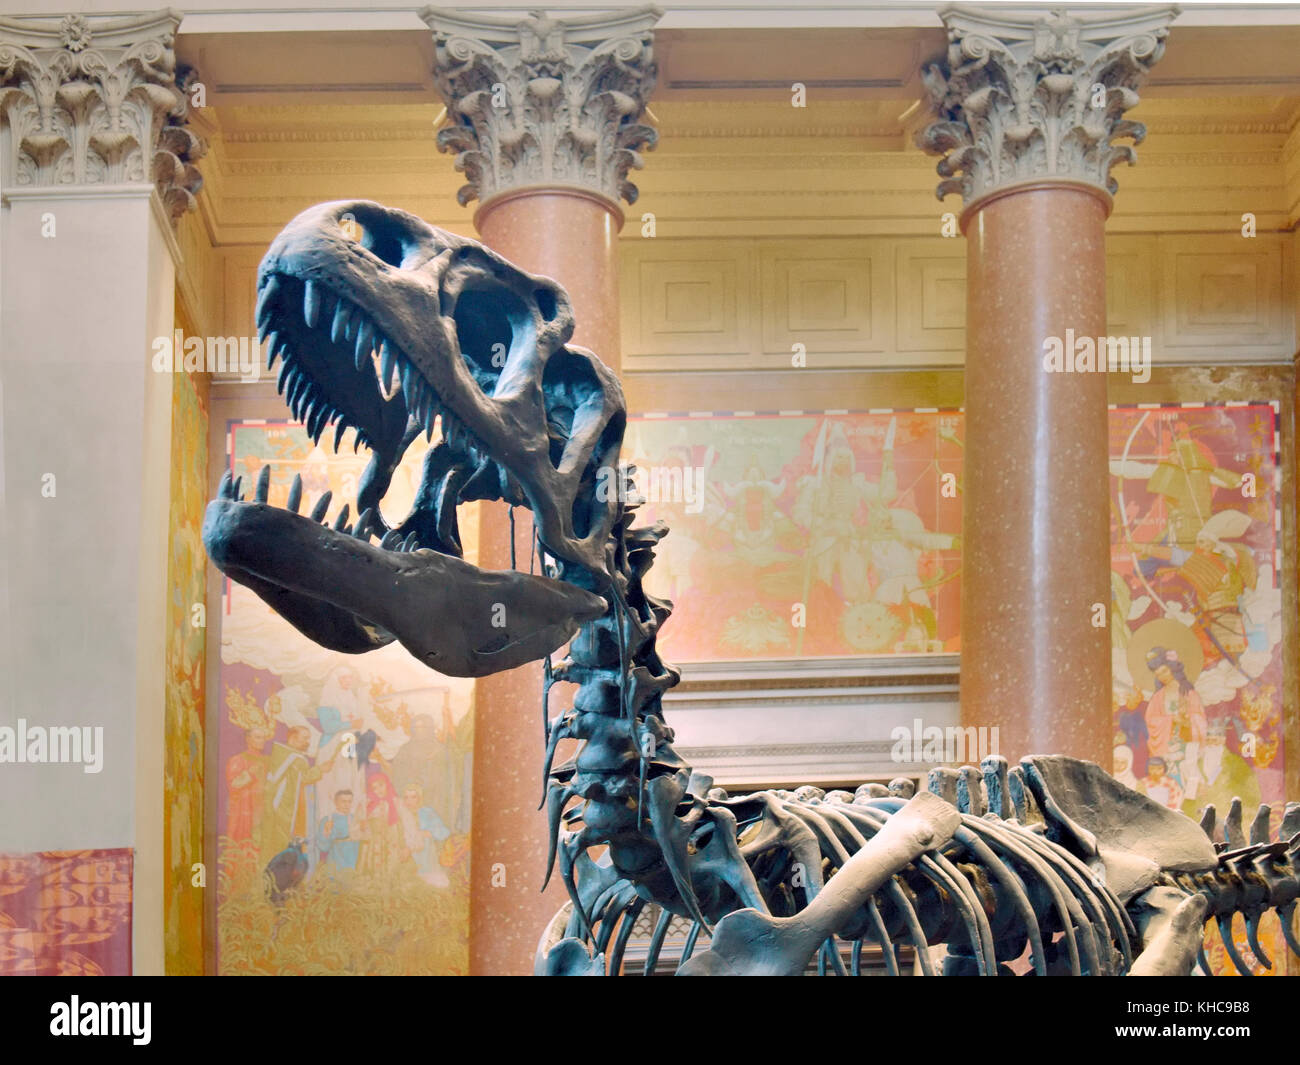 T-Rex on display, Museum of Natural History, New York - Stock Image